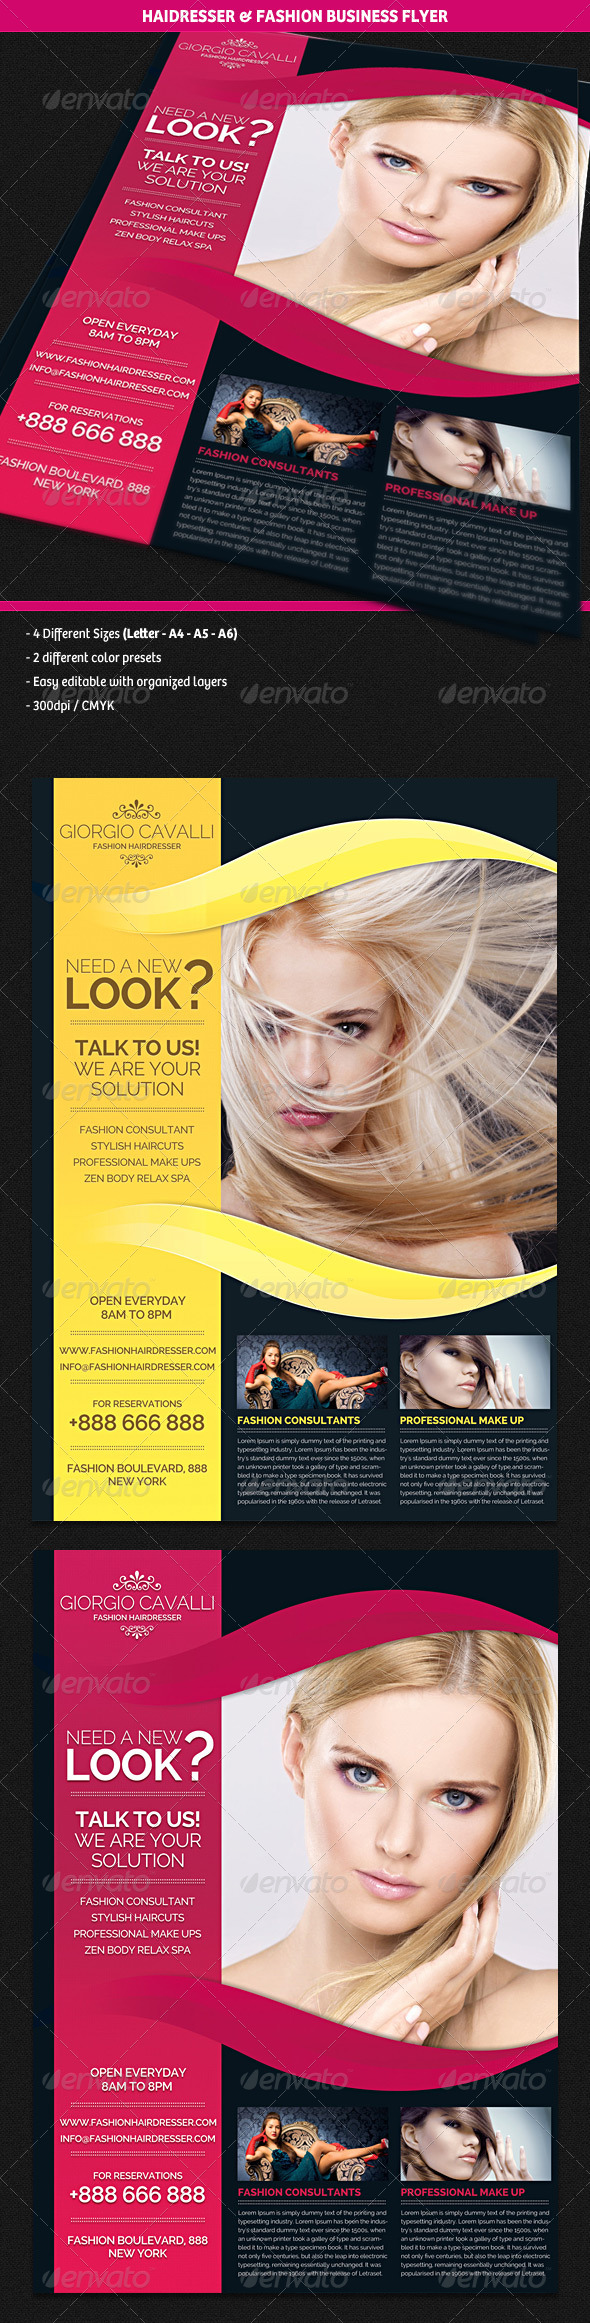 Hair Dresser Salon & Fashion Business Flyer - Corporate Flyers